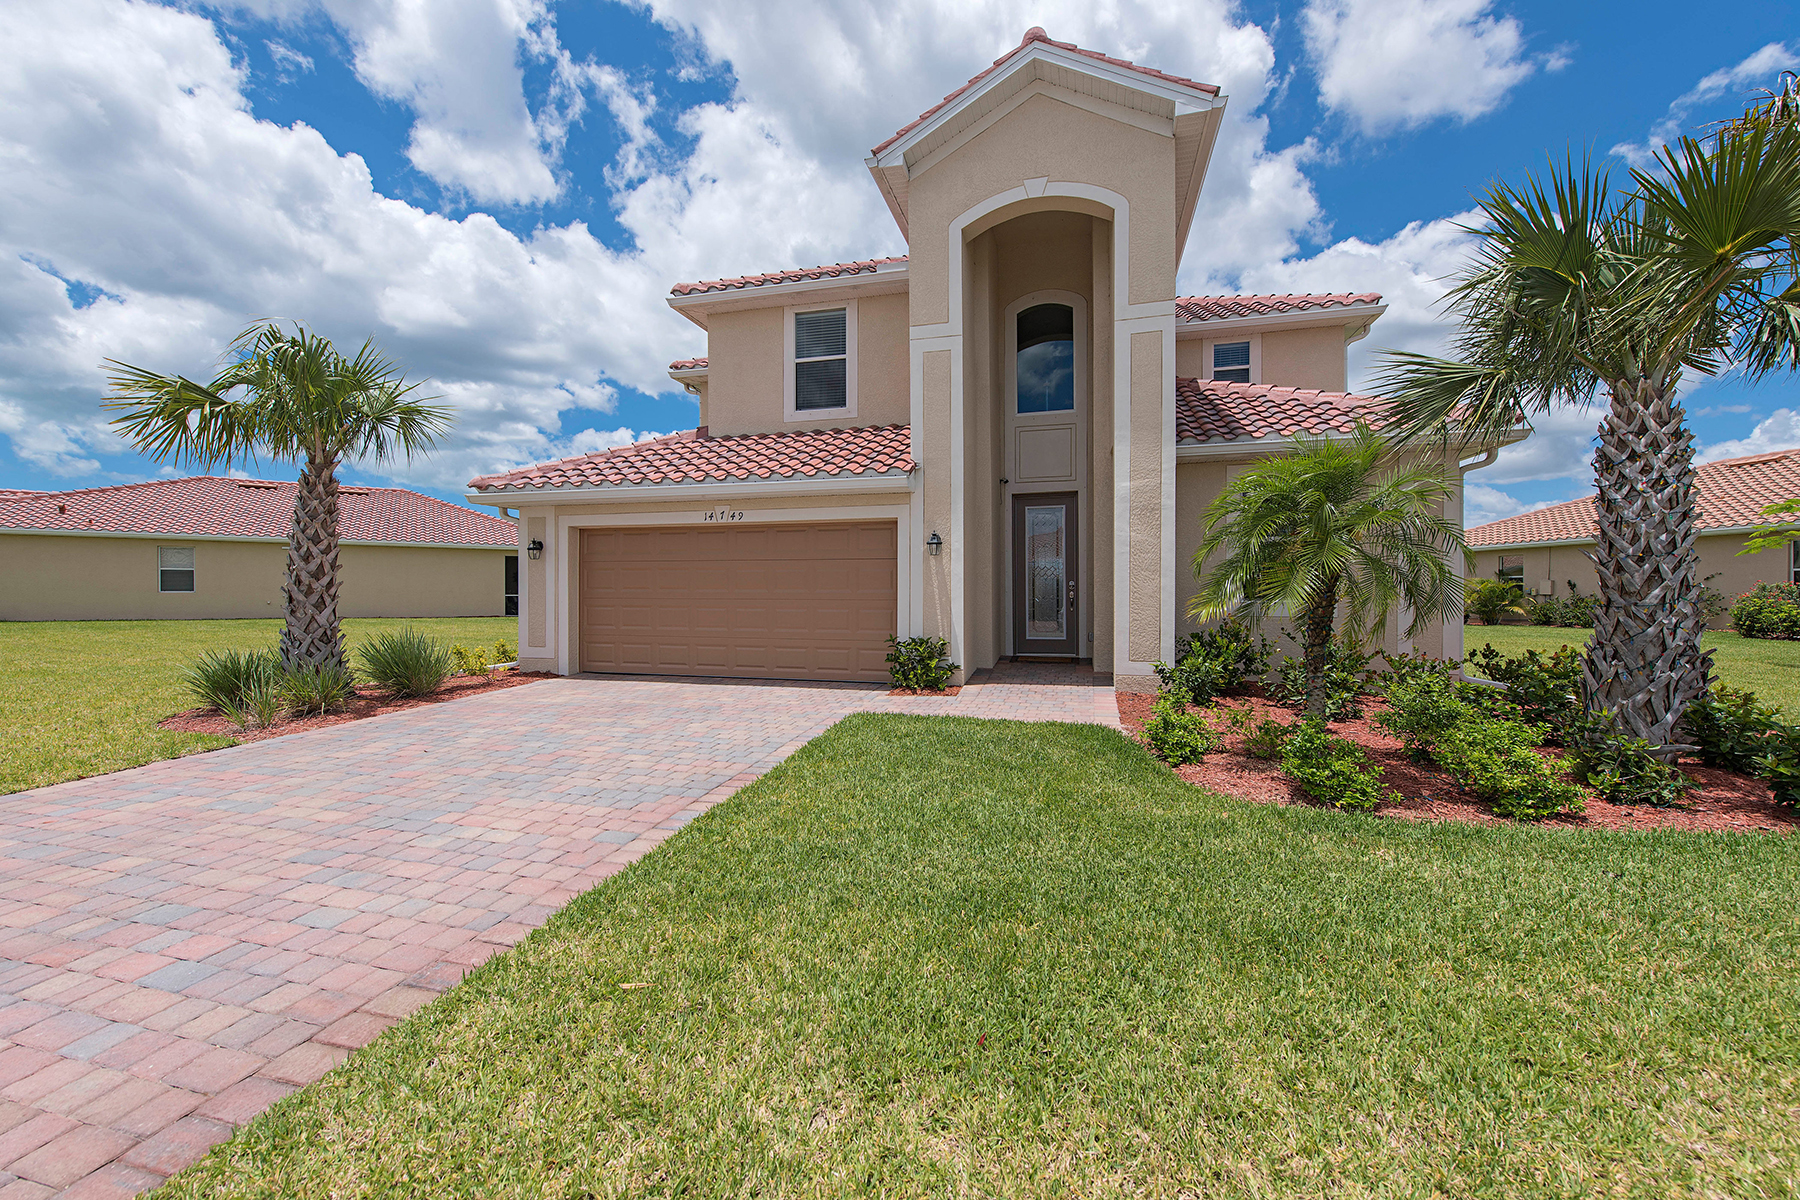 Vivienda unifamiliar por un Venta en REFLECTION LAKES 14749 Cranberry Ct Naples, Florida, 34114 Estados Unidos